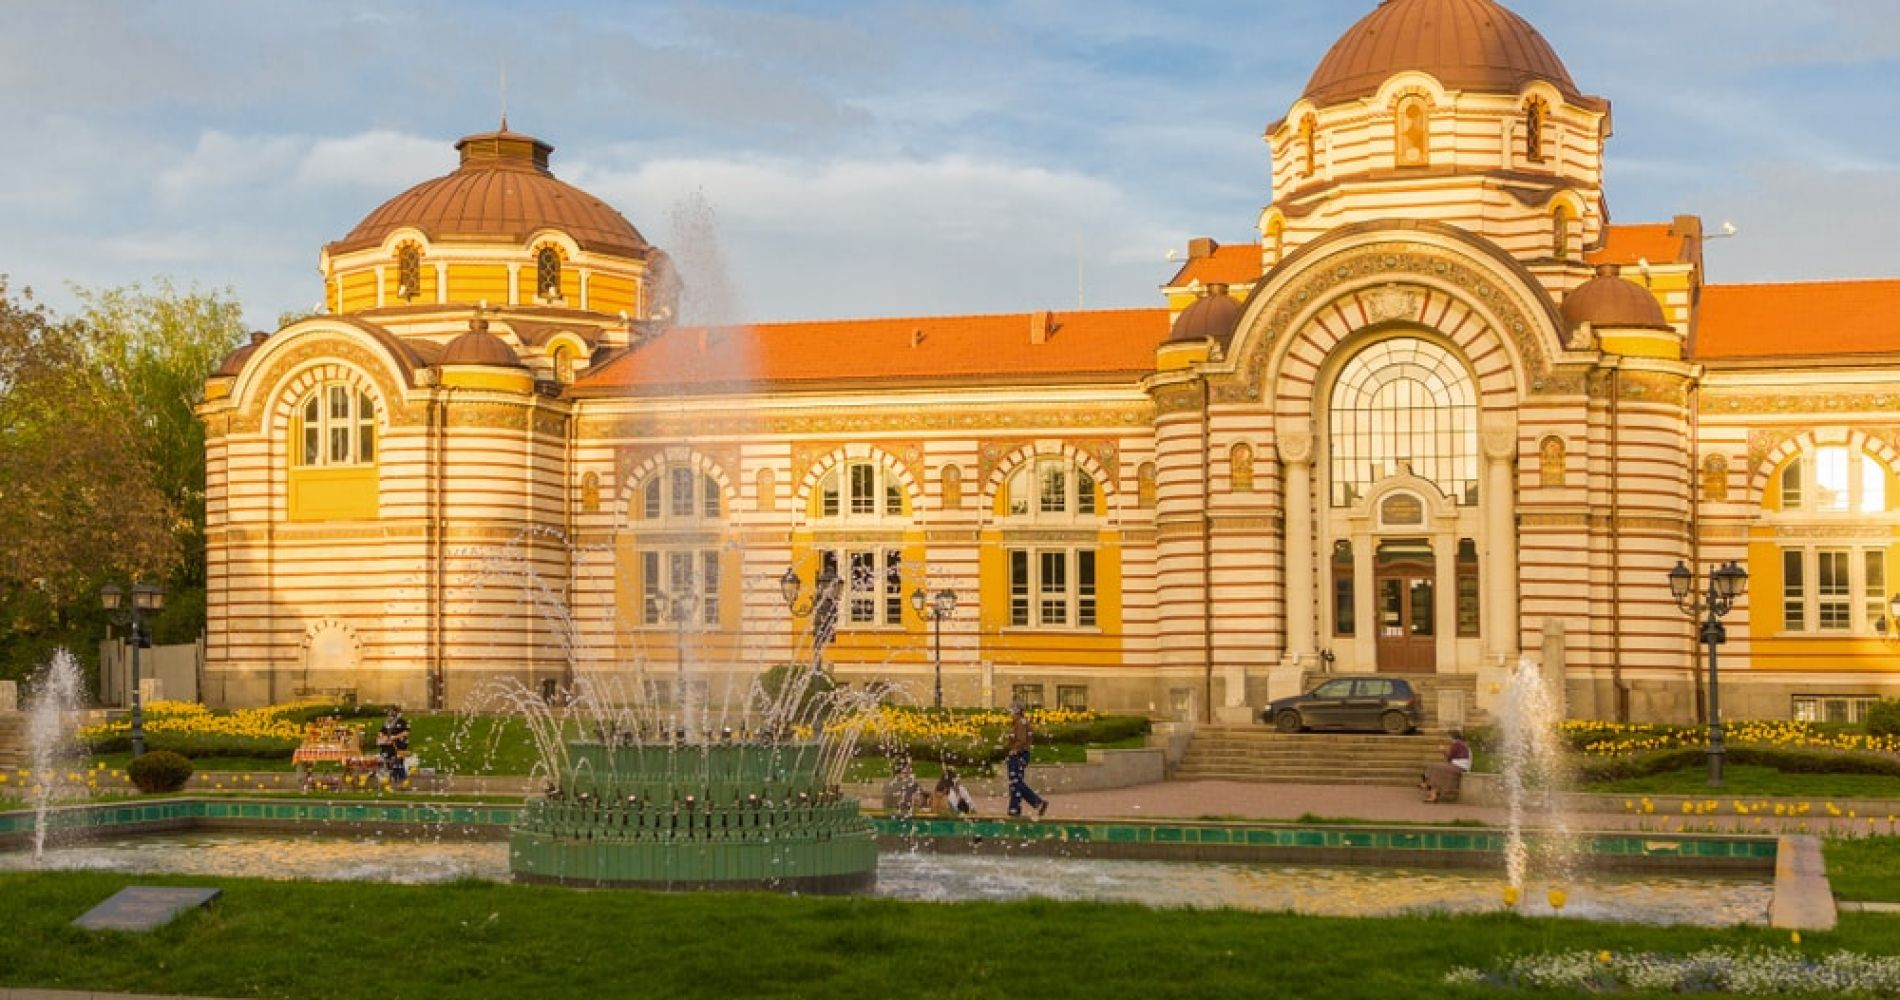 Visit National Museums in Sofia